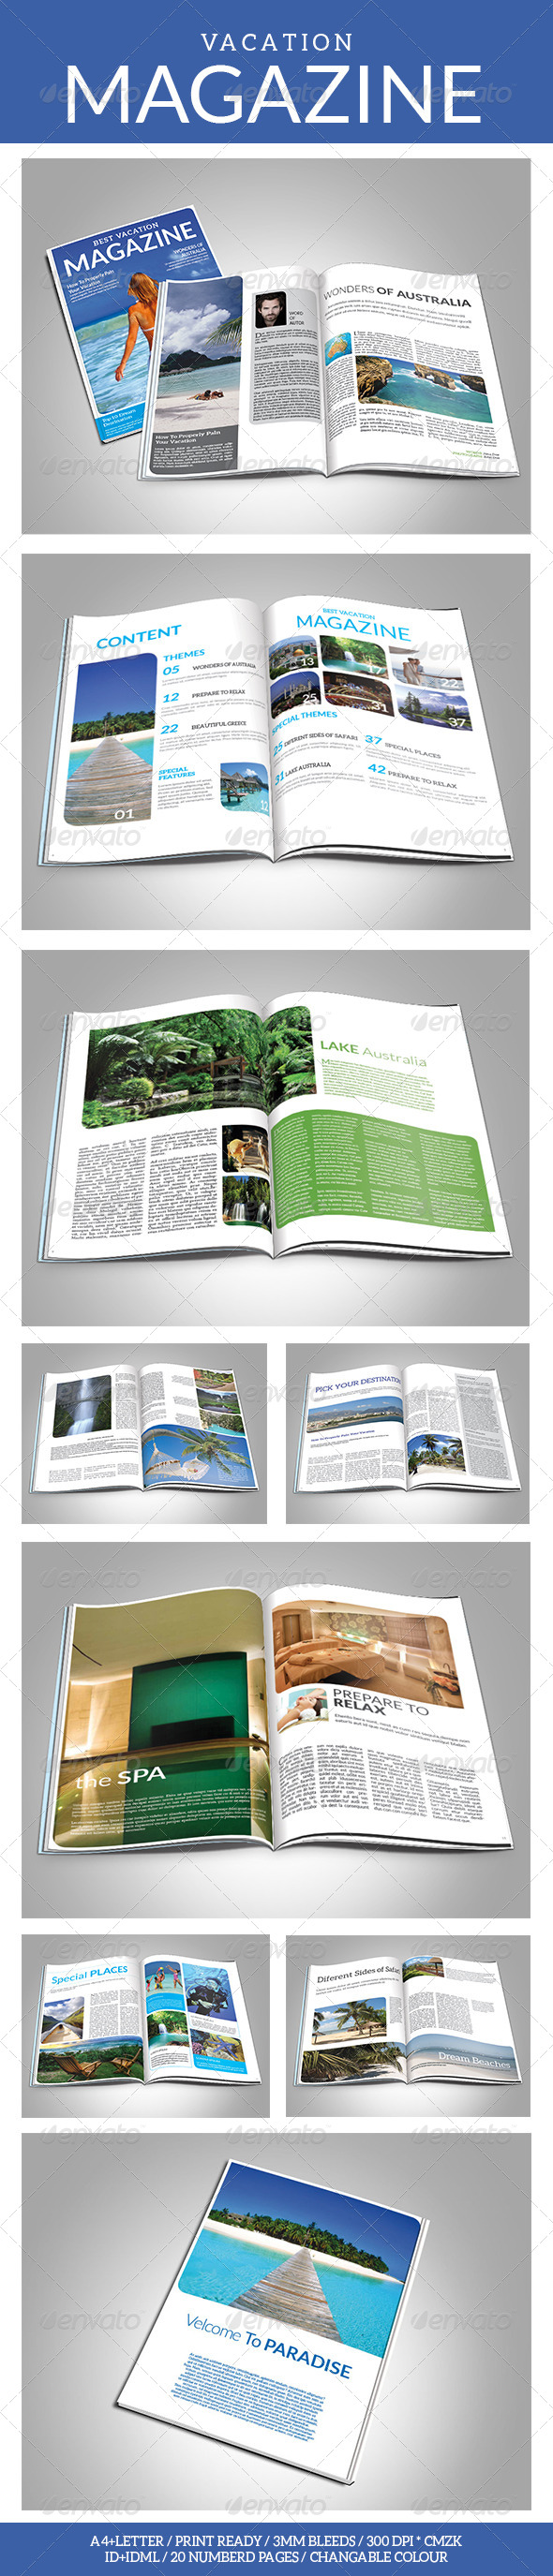 Vacation Magazine Template - Magazines Print Templates